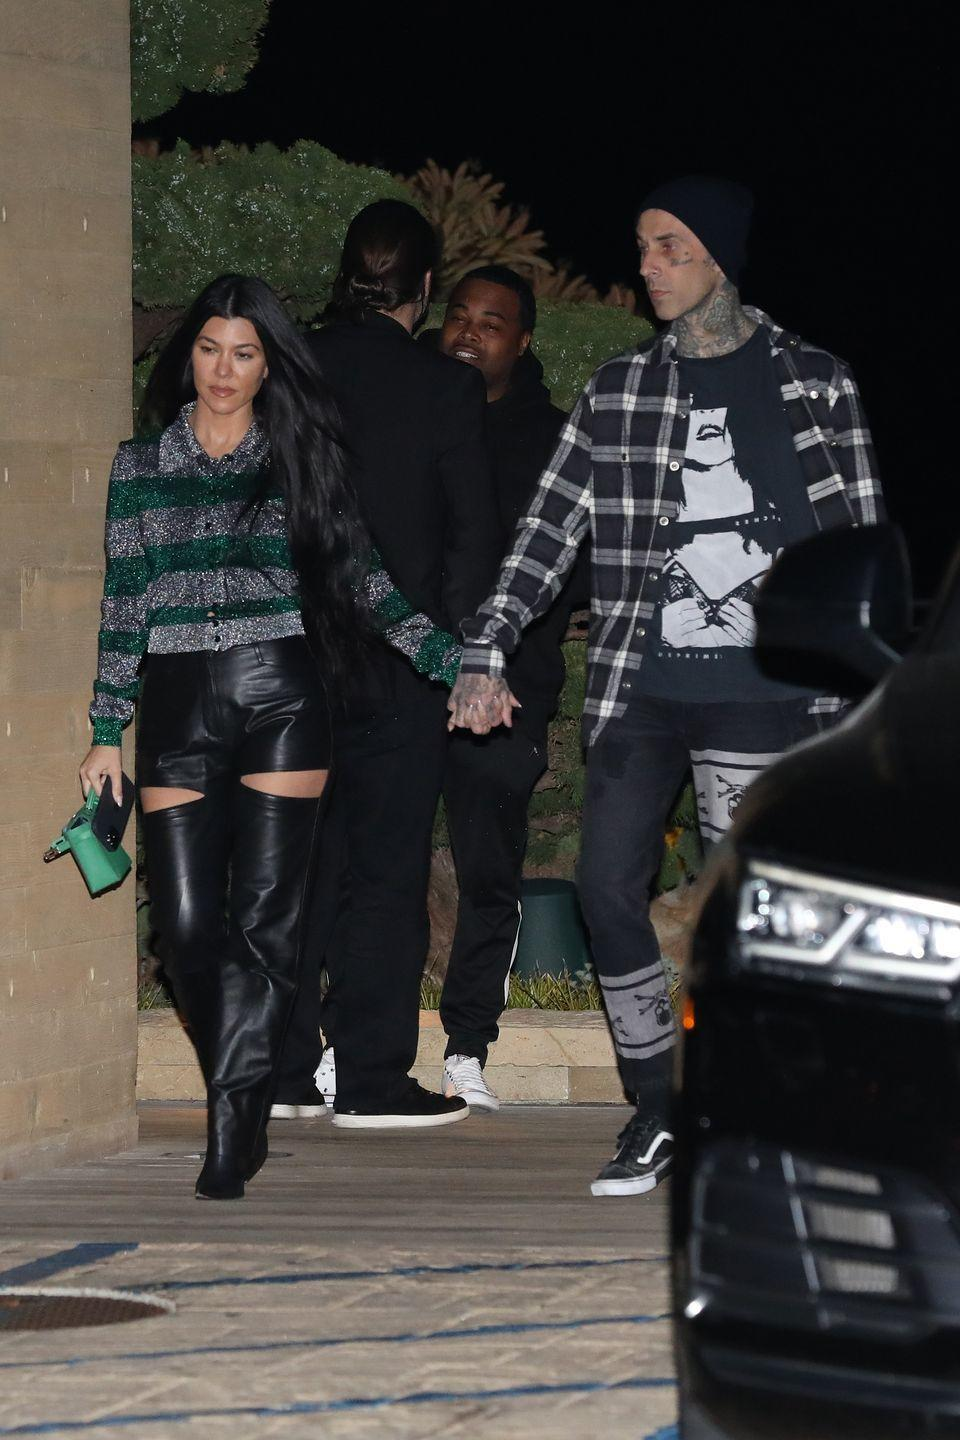 """<p>Normally, a gap this big between a couple, wouldn't be the best of signs, but Donaldson's reassured when she picks up on the couple's holding hands. """"Kourtney and Travis are holding hands tightly, fingers intertwined, palm touching palm, signaling their deep connection, and also signaling """"we're in love.""""'</p><p>Despite the distance between their bodies, Kourtney and Travis make sure they're keeping connected in some way. That physical move points to an authentic emotional one.<br></p>"""